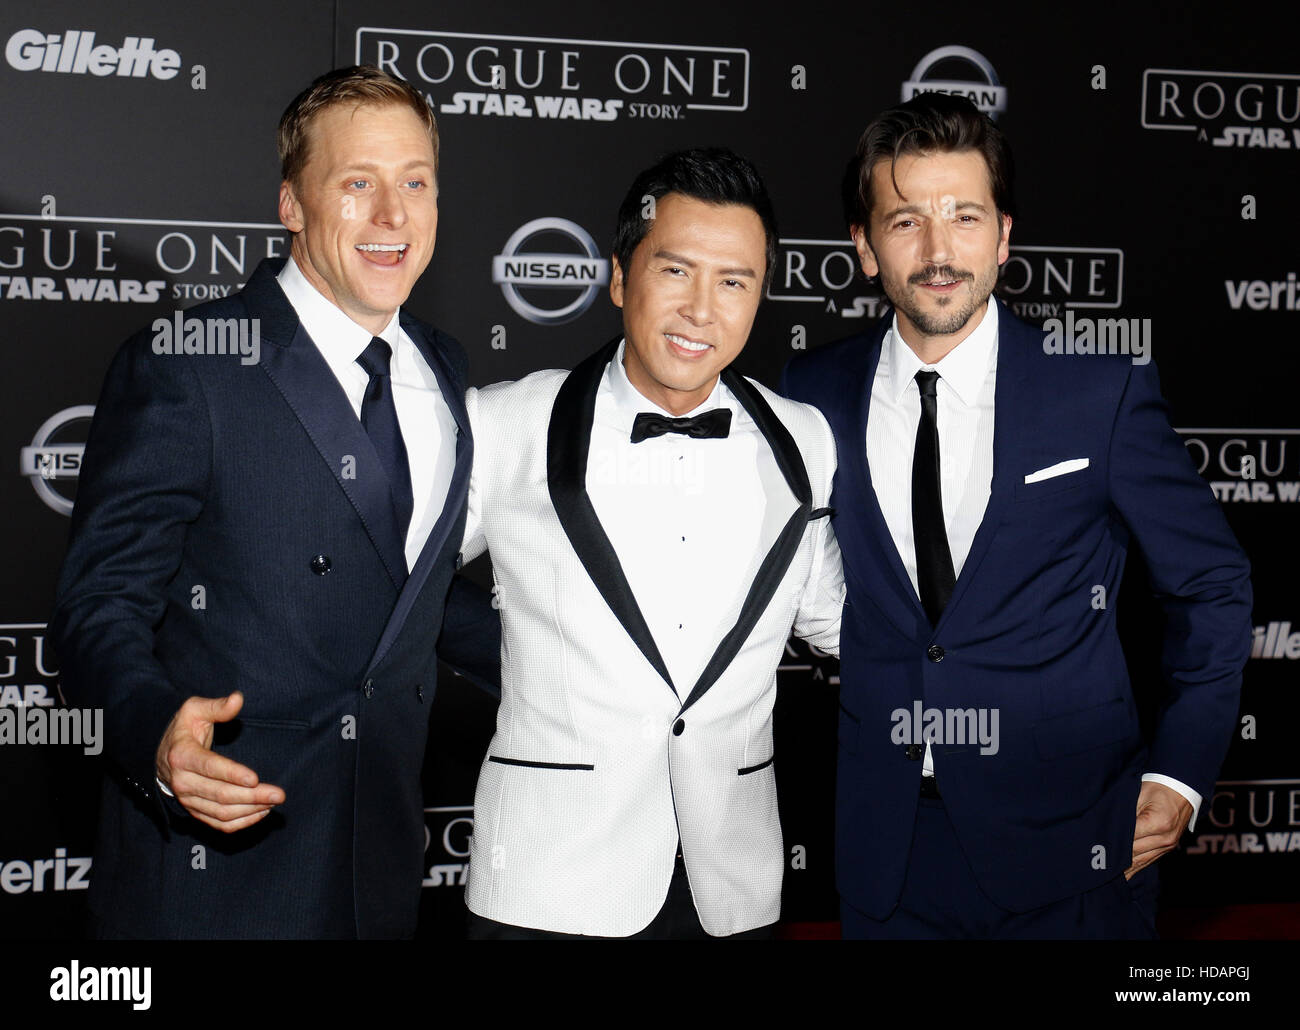 Hollywood, California, USA. Decimo Dec, 2016. Alan Tudyk, Donnie Yen e Diego Luna alla premiere mondiale di 'Rogue Immagini Stock